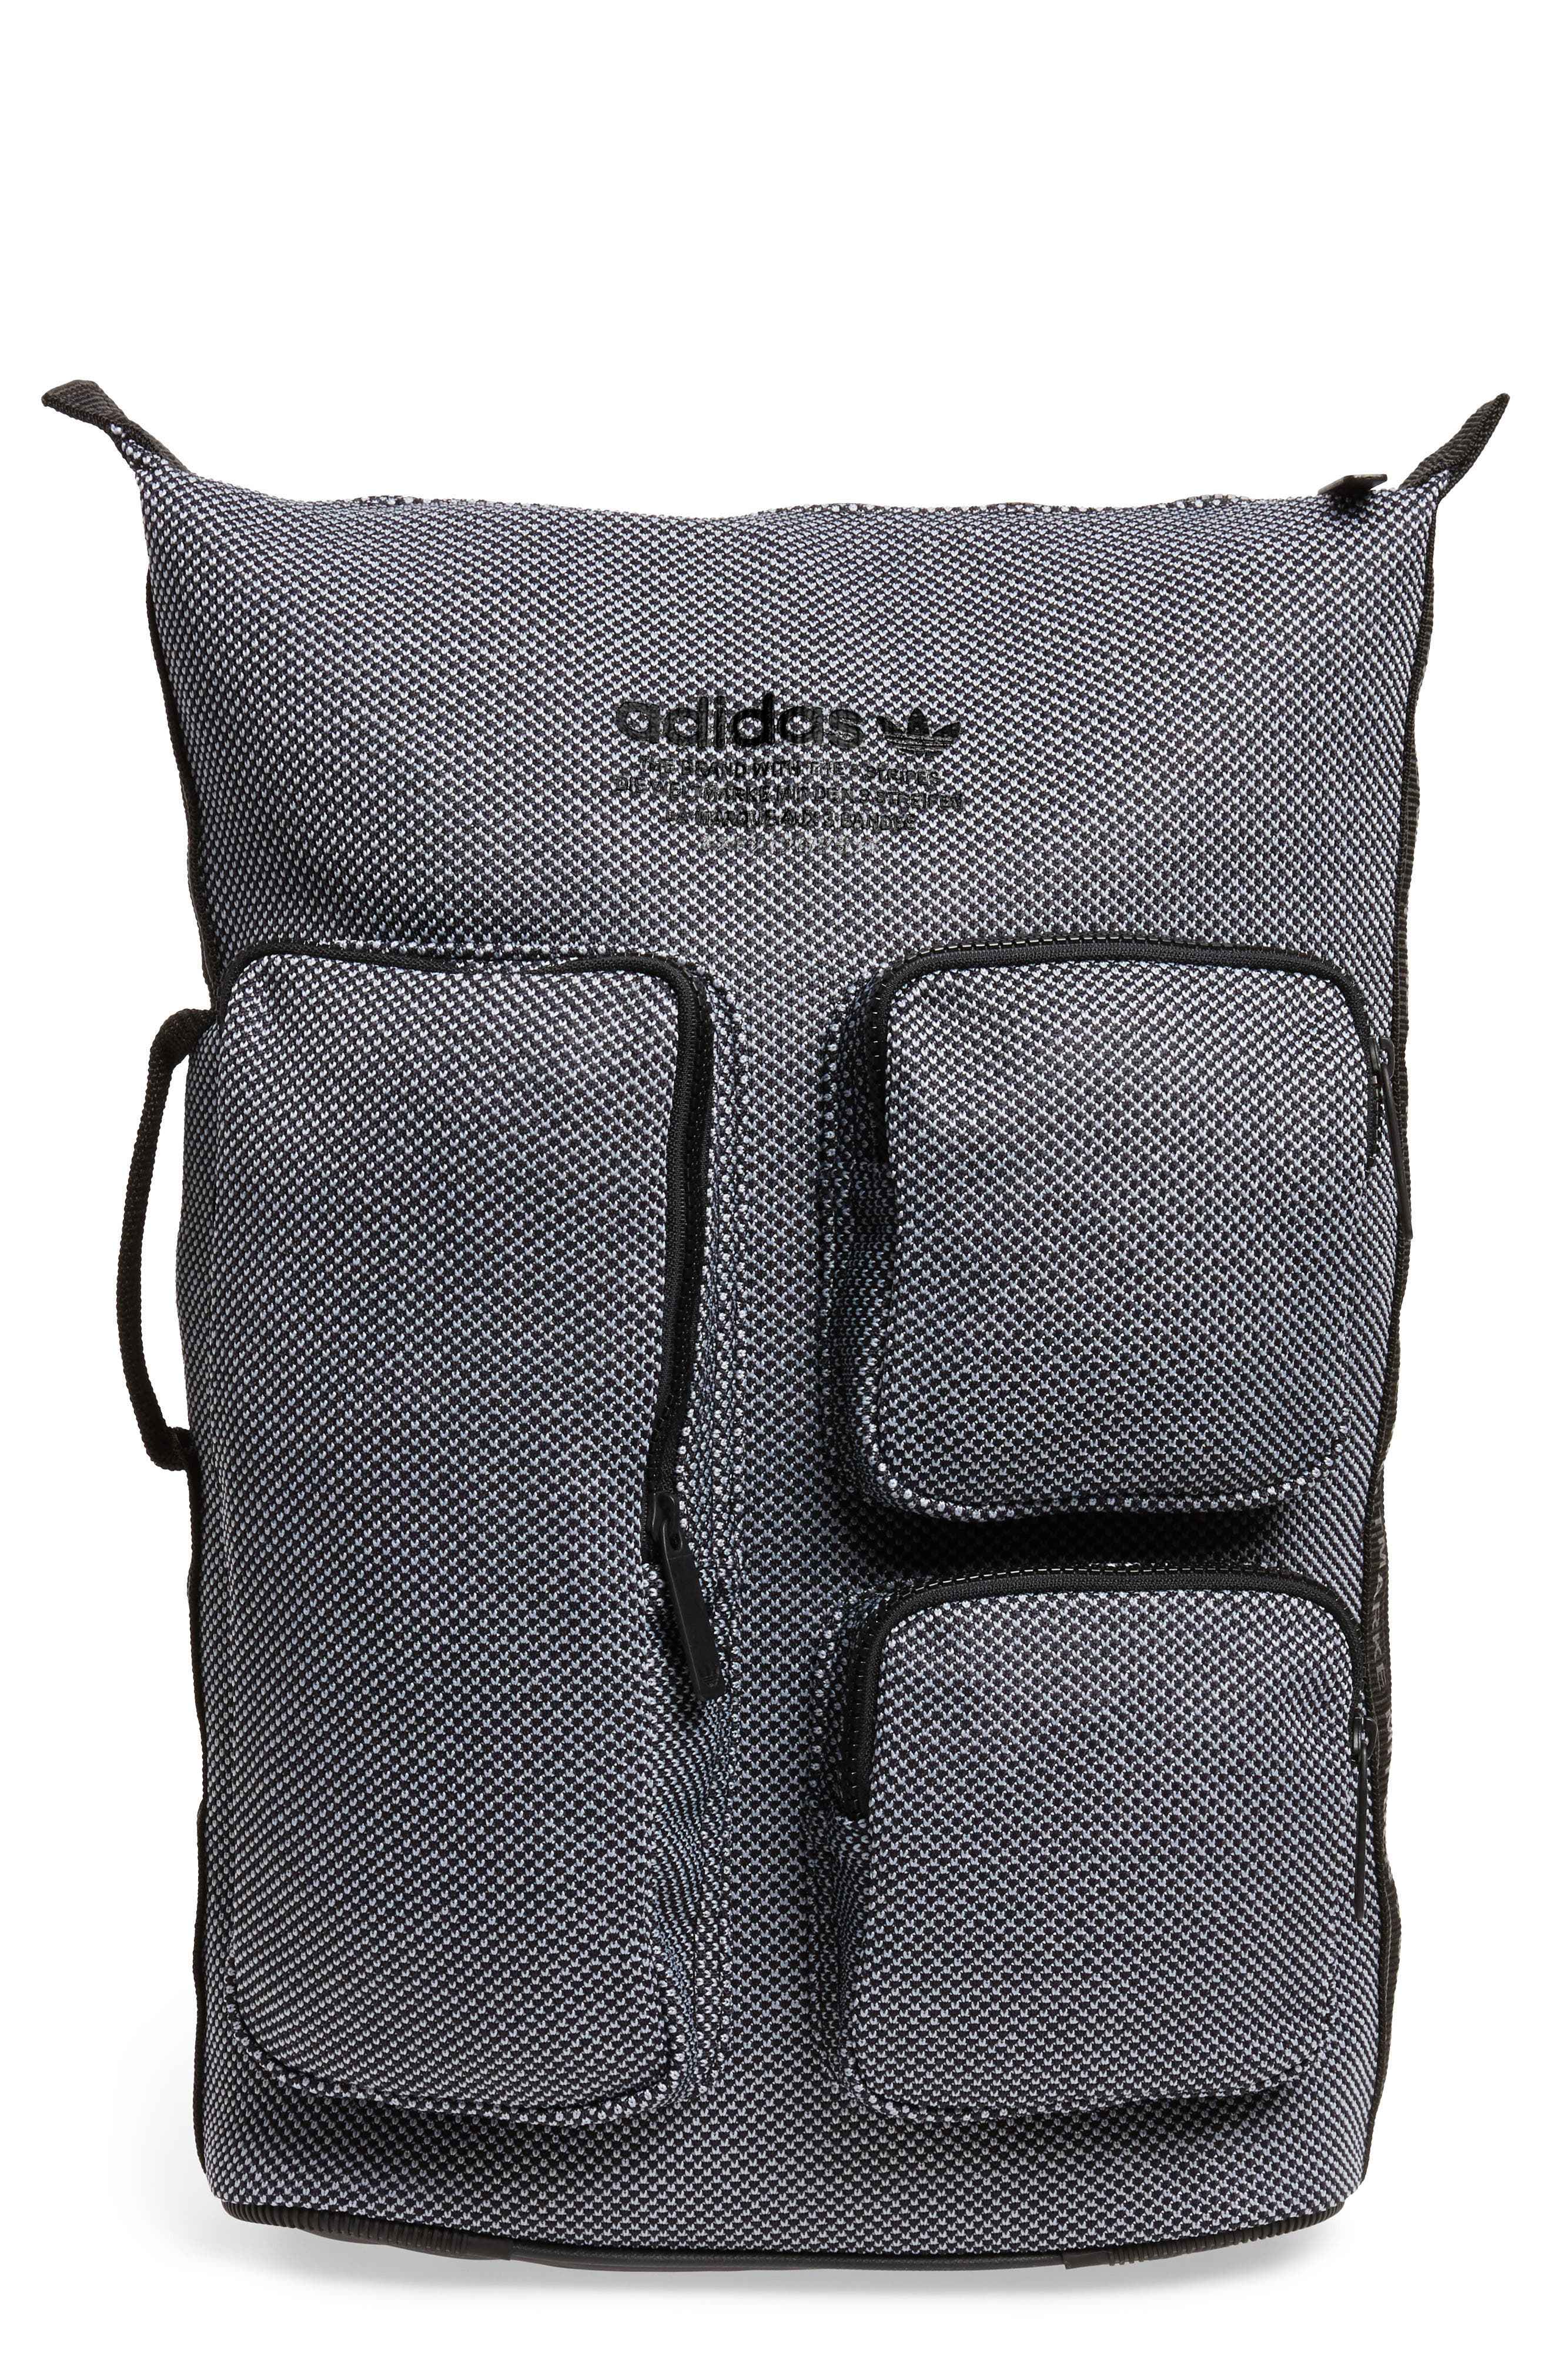 NMD Day Backpack,                         Main,                         color, 001